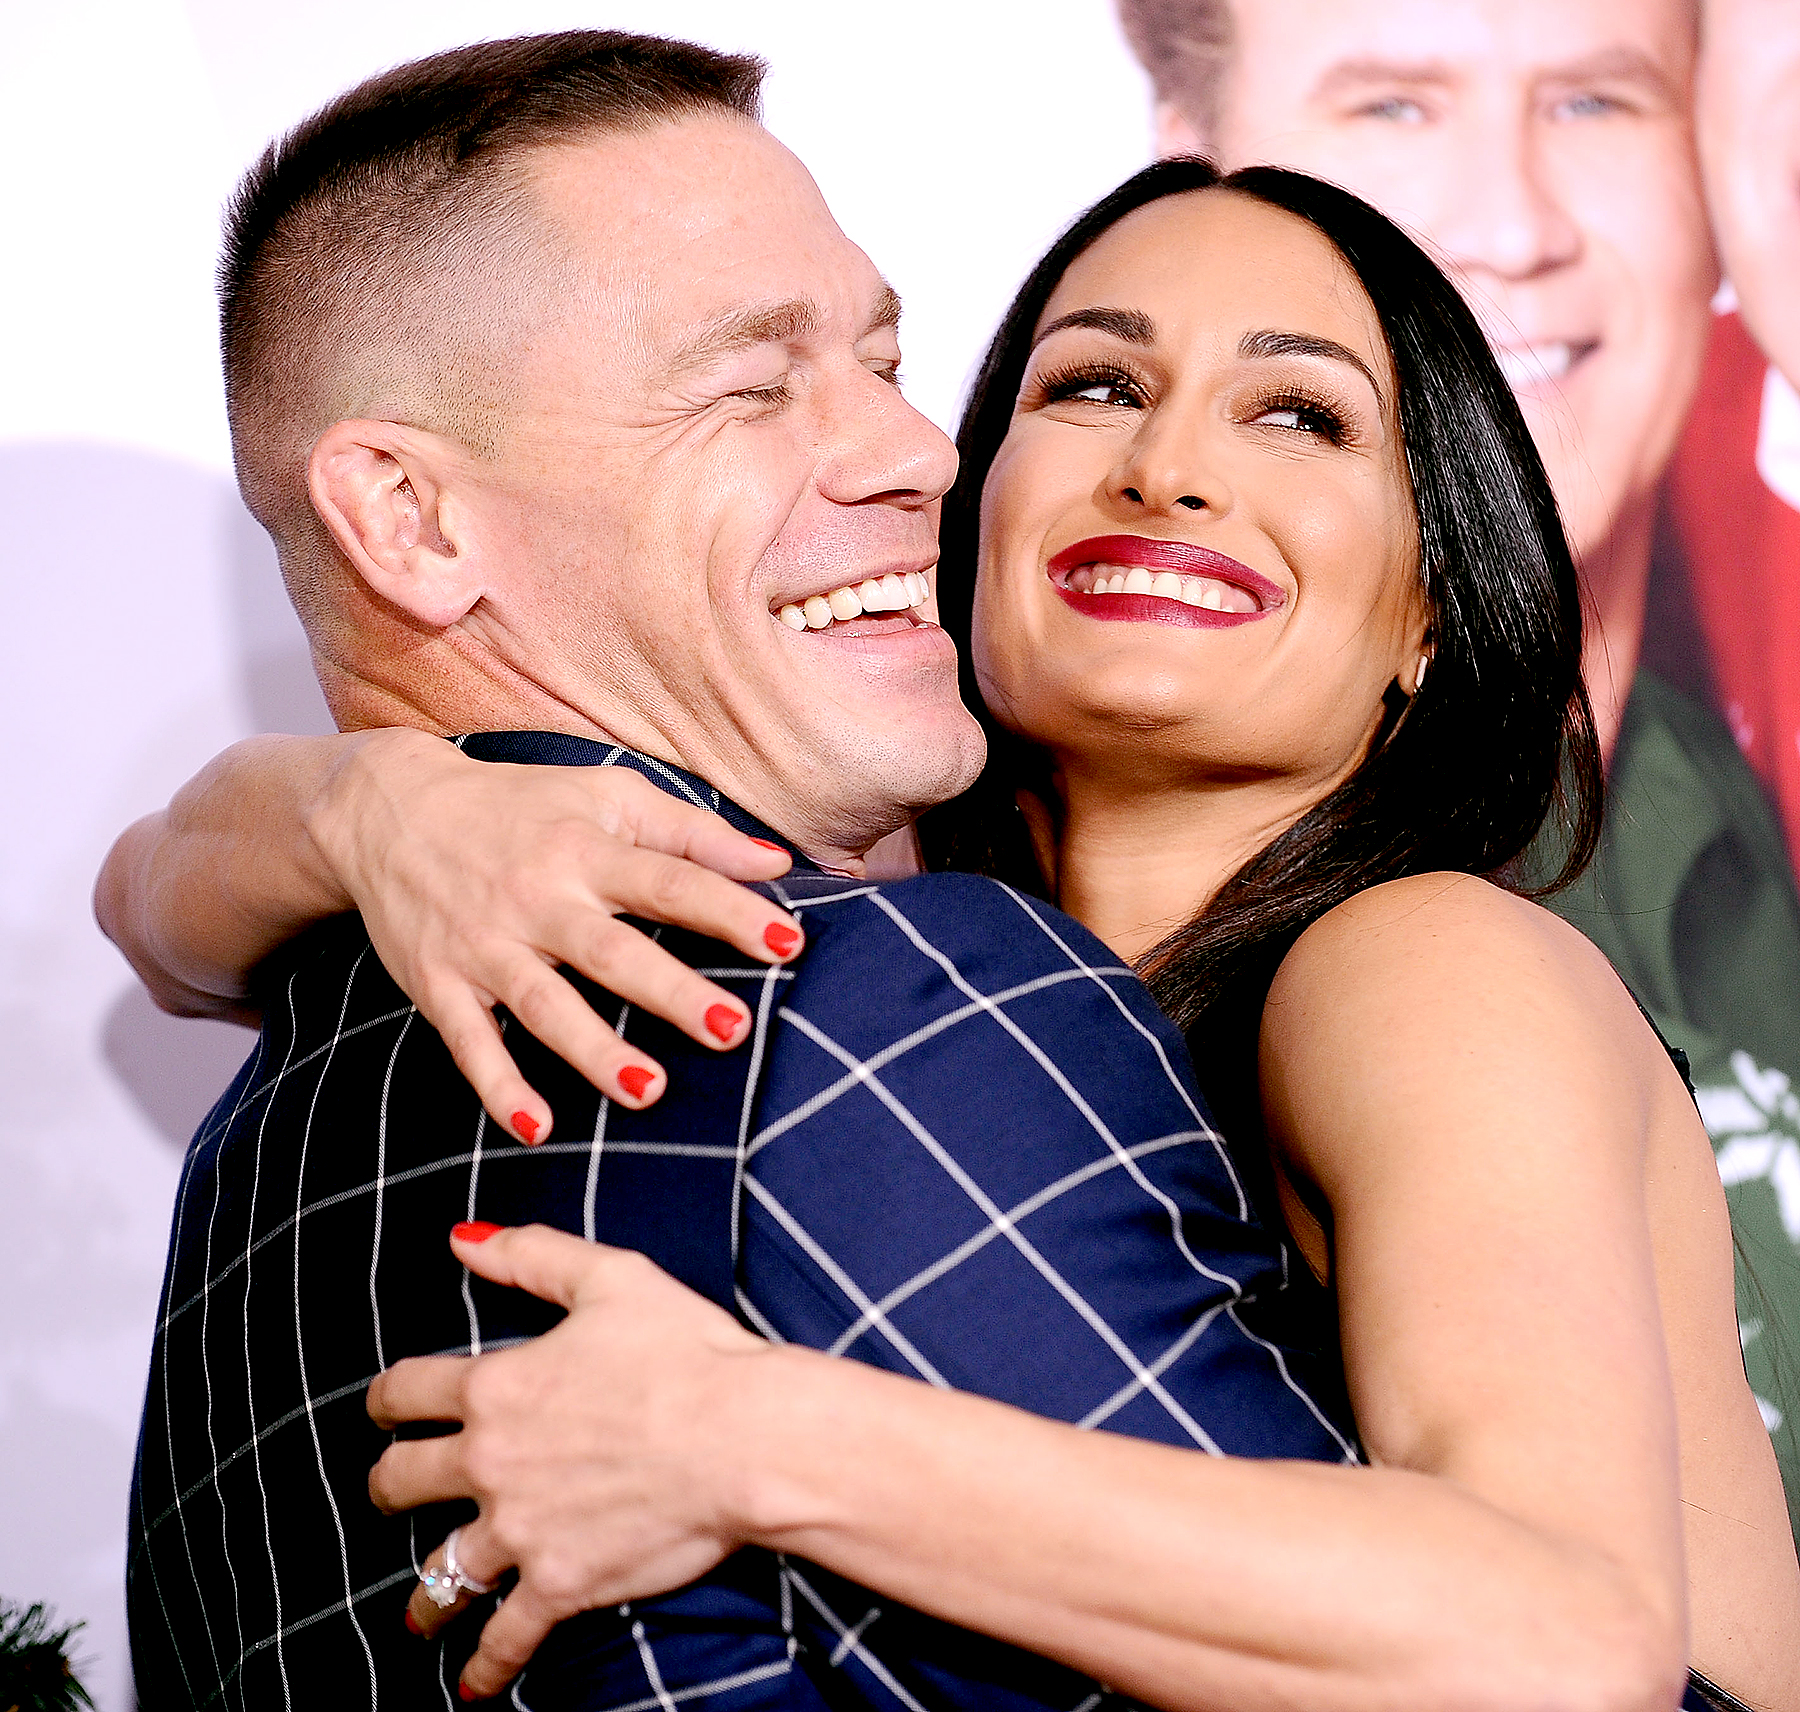 John Cena Was A Changed Person Before Ending Romance With Nikki Bella